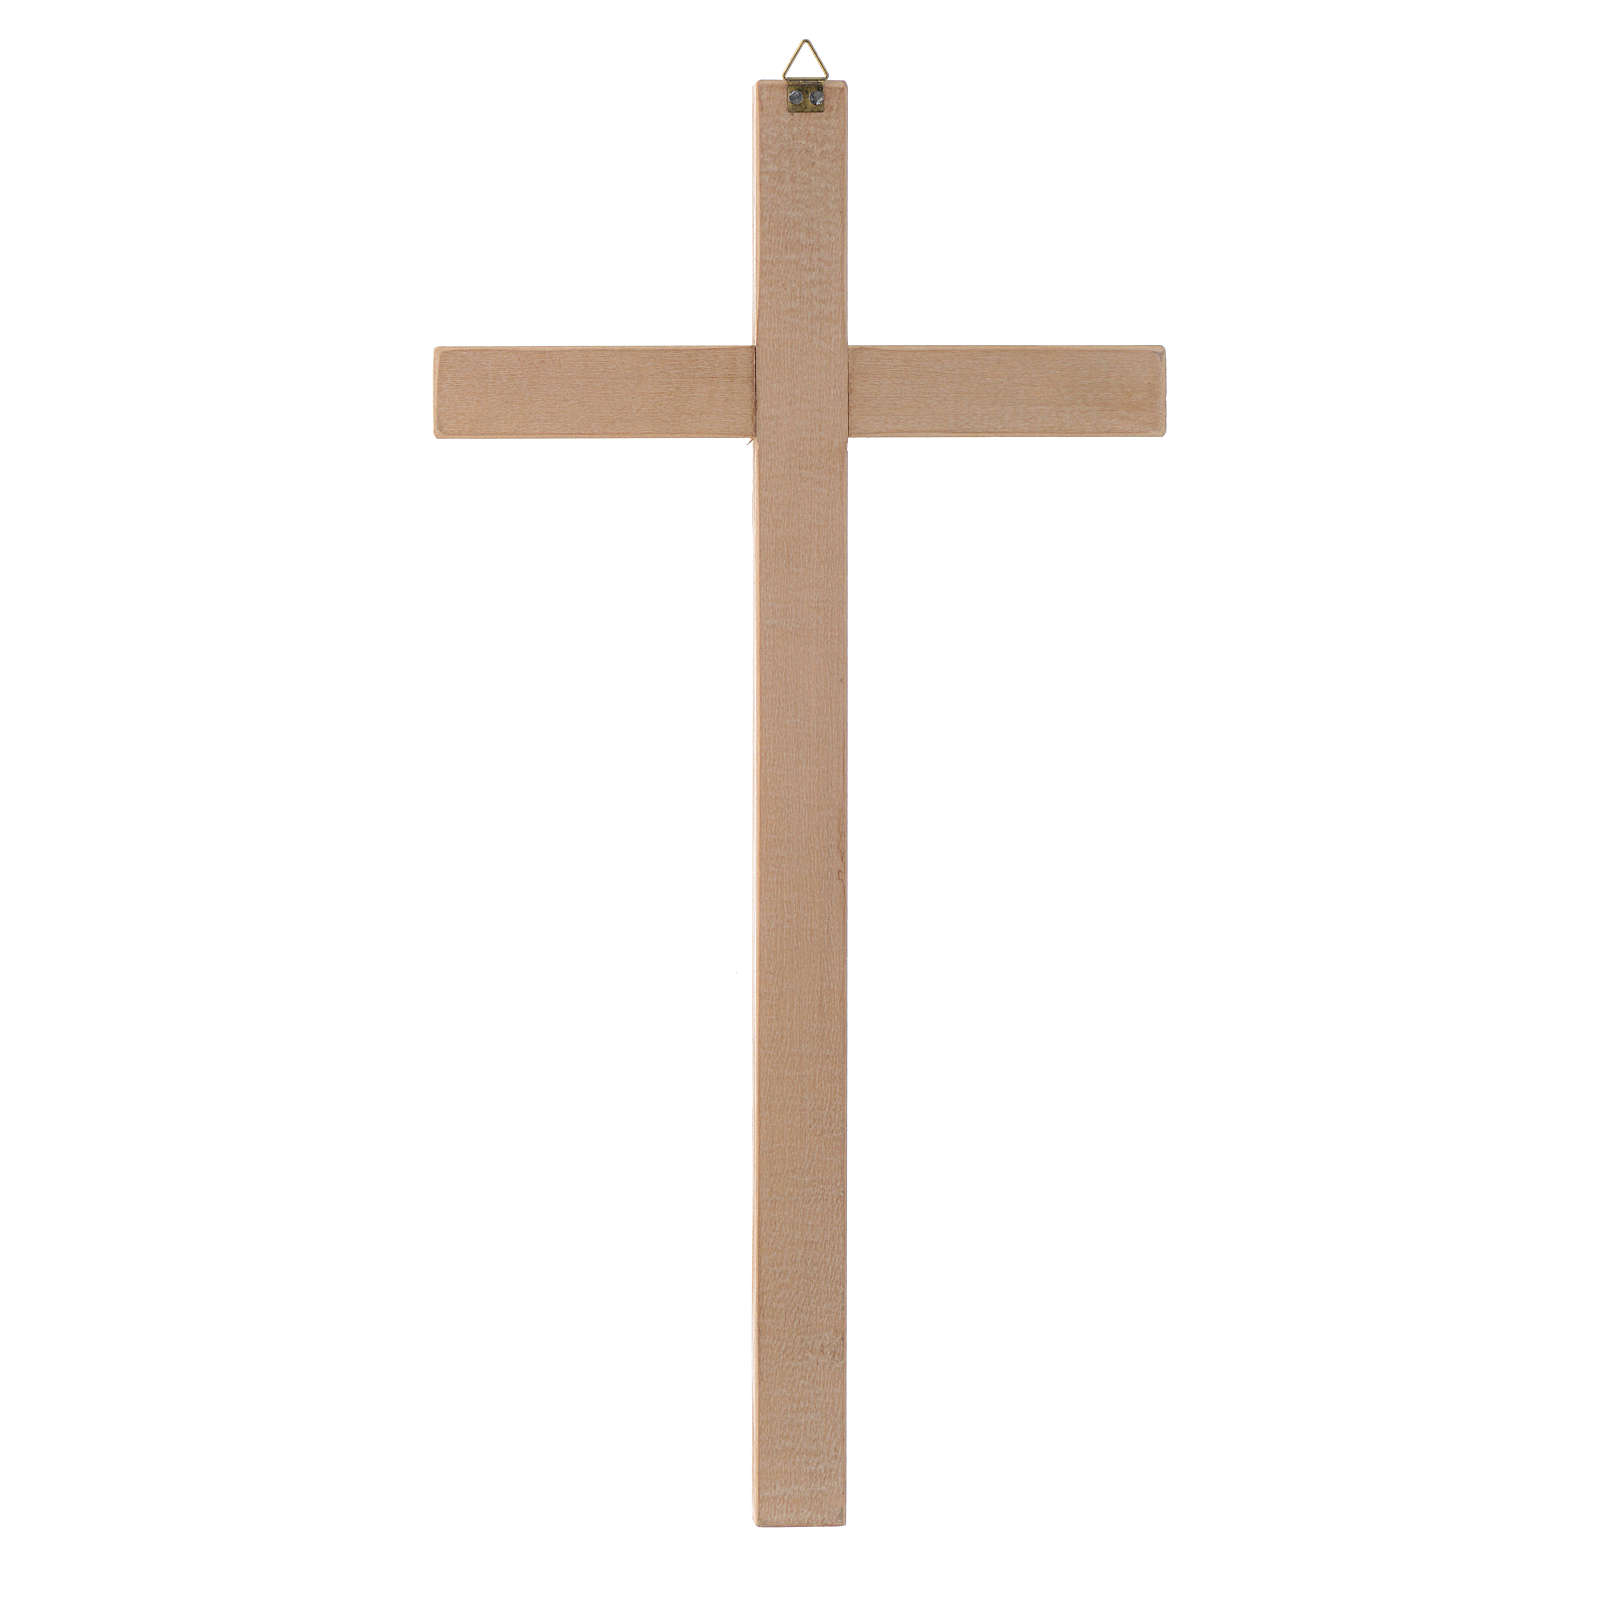 Straight cross in natural wood 4